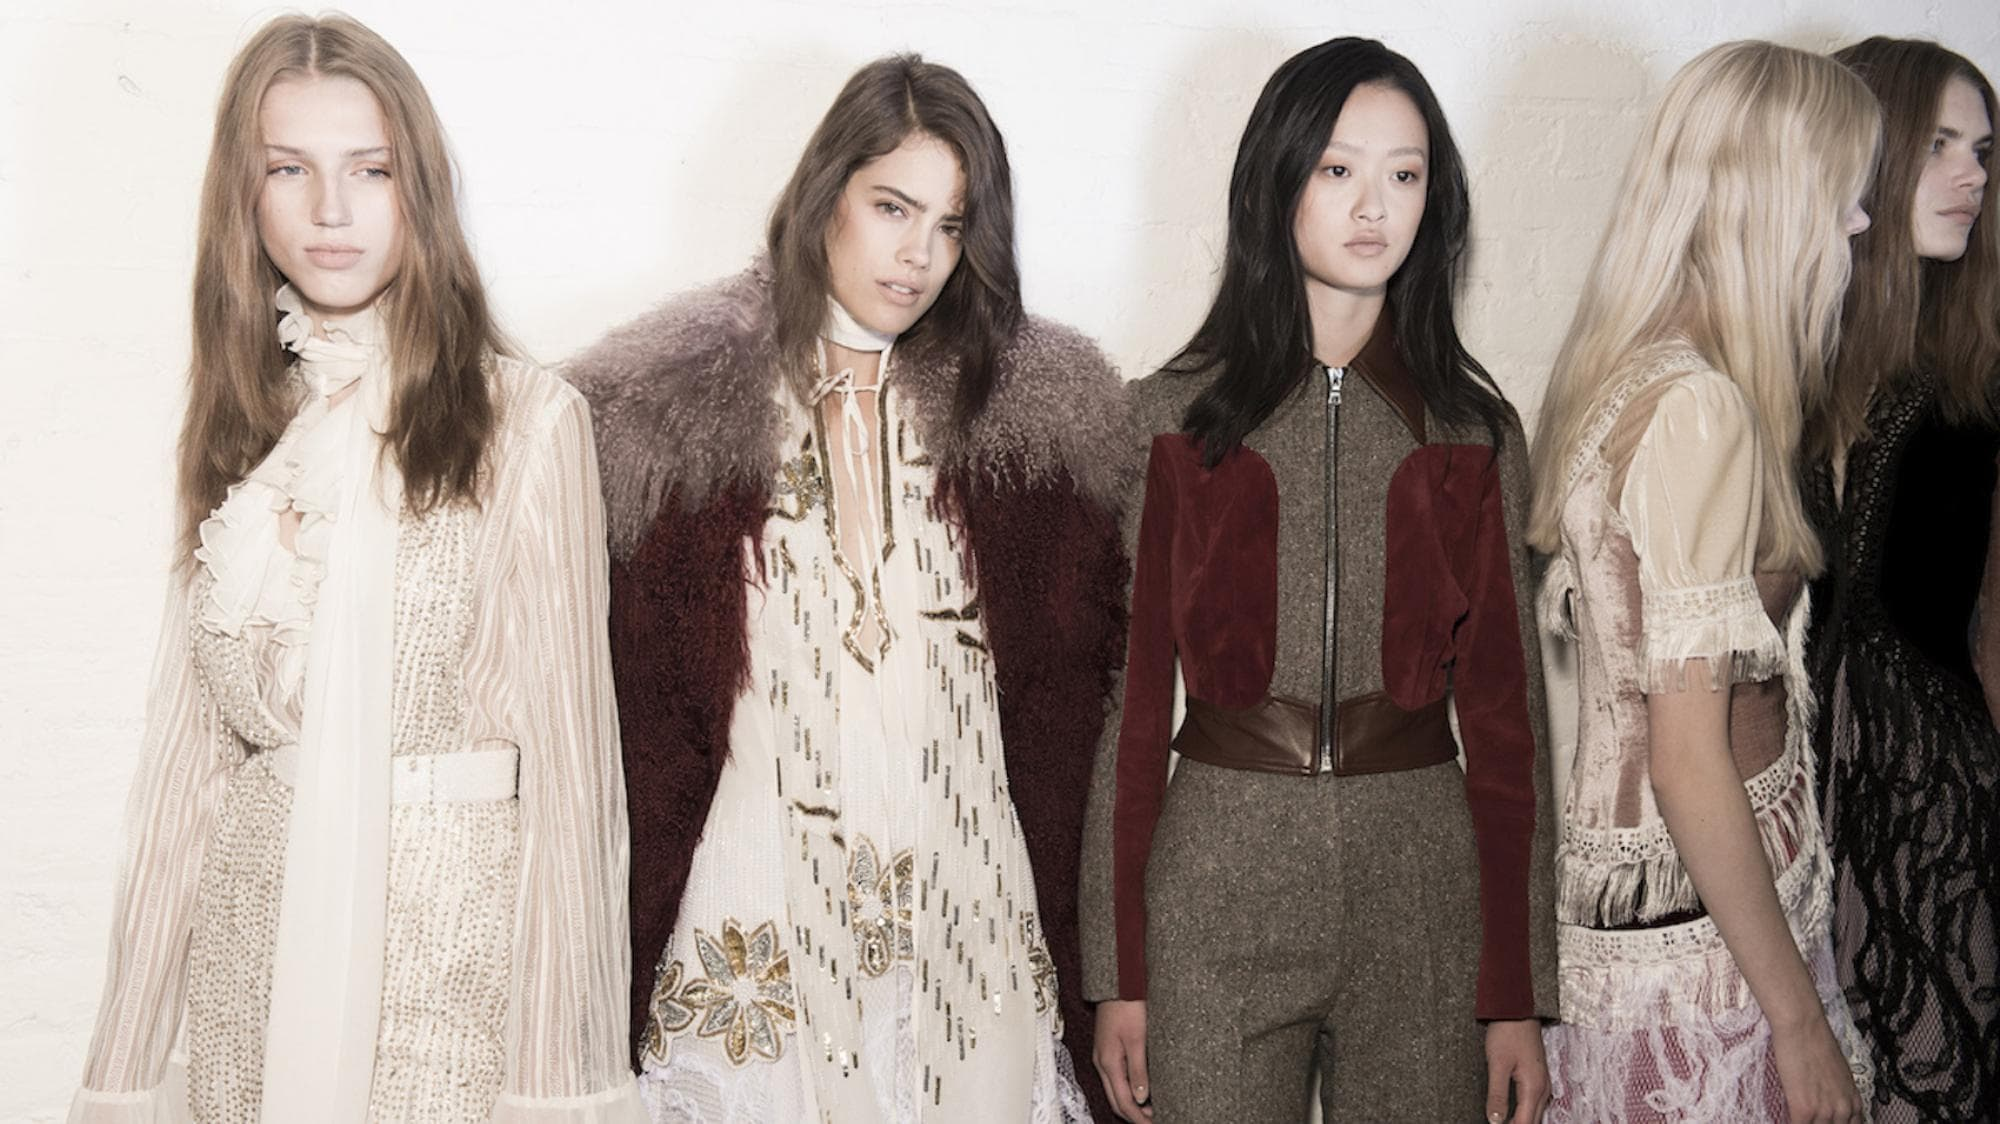 rodarte-sprin-summer-2016-freedom-runway-magazine Five new invited members for next Haute Couture Fashion Week in Paris